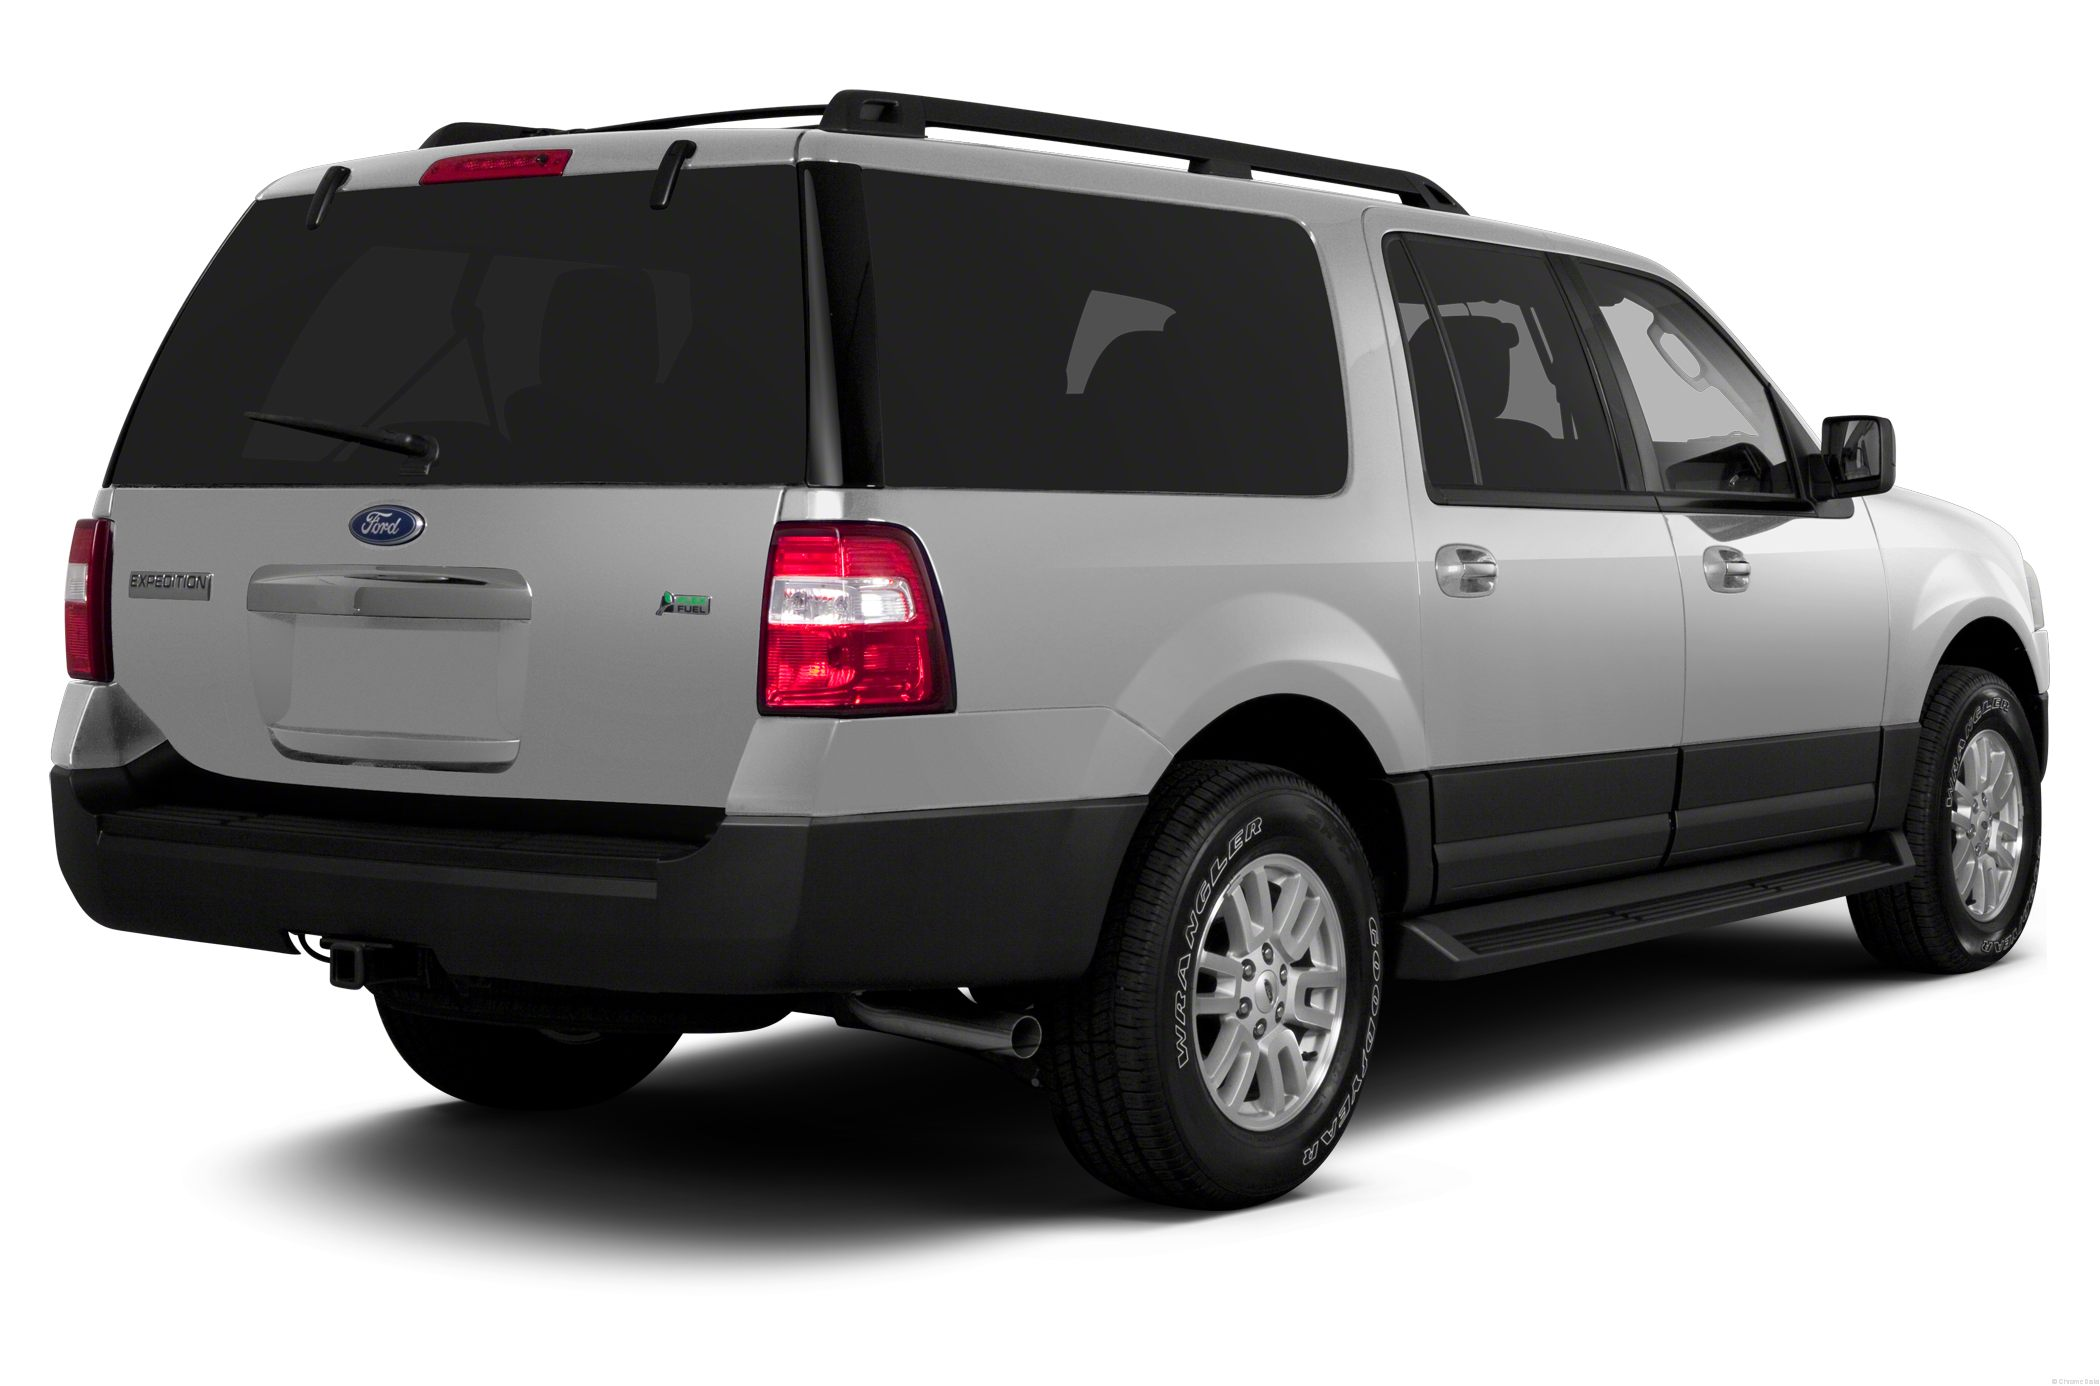 2013 ford expedition image 17